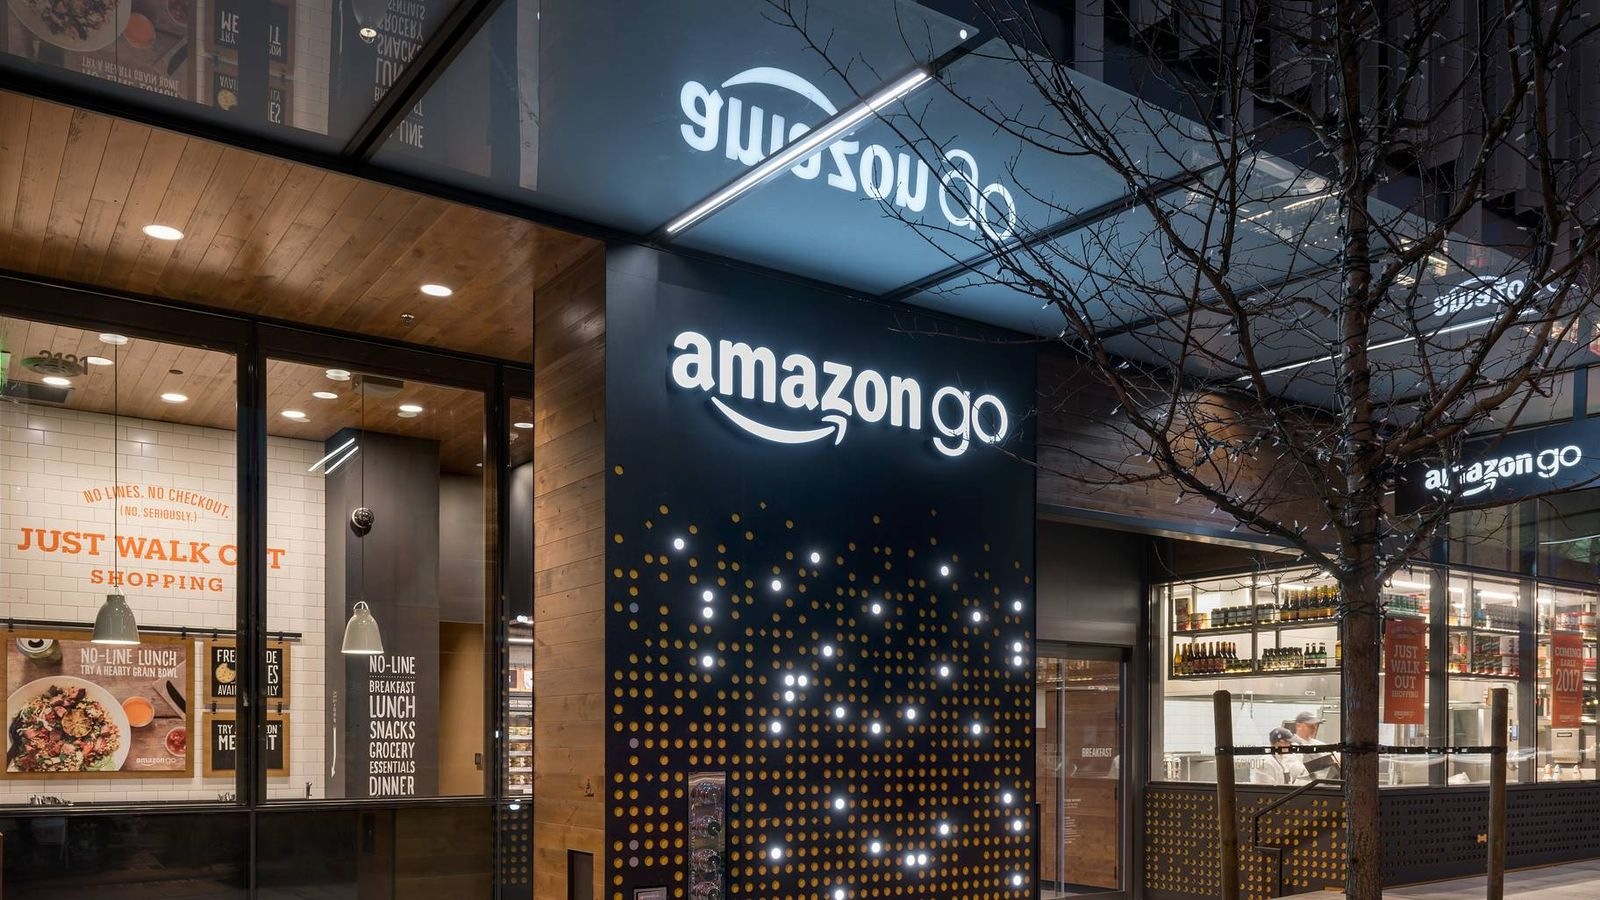 The retail workforce in the age of Amazon Go